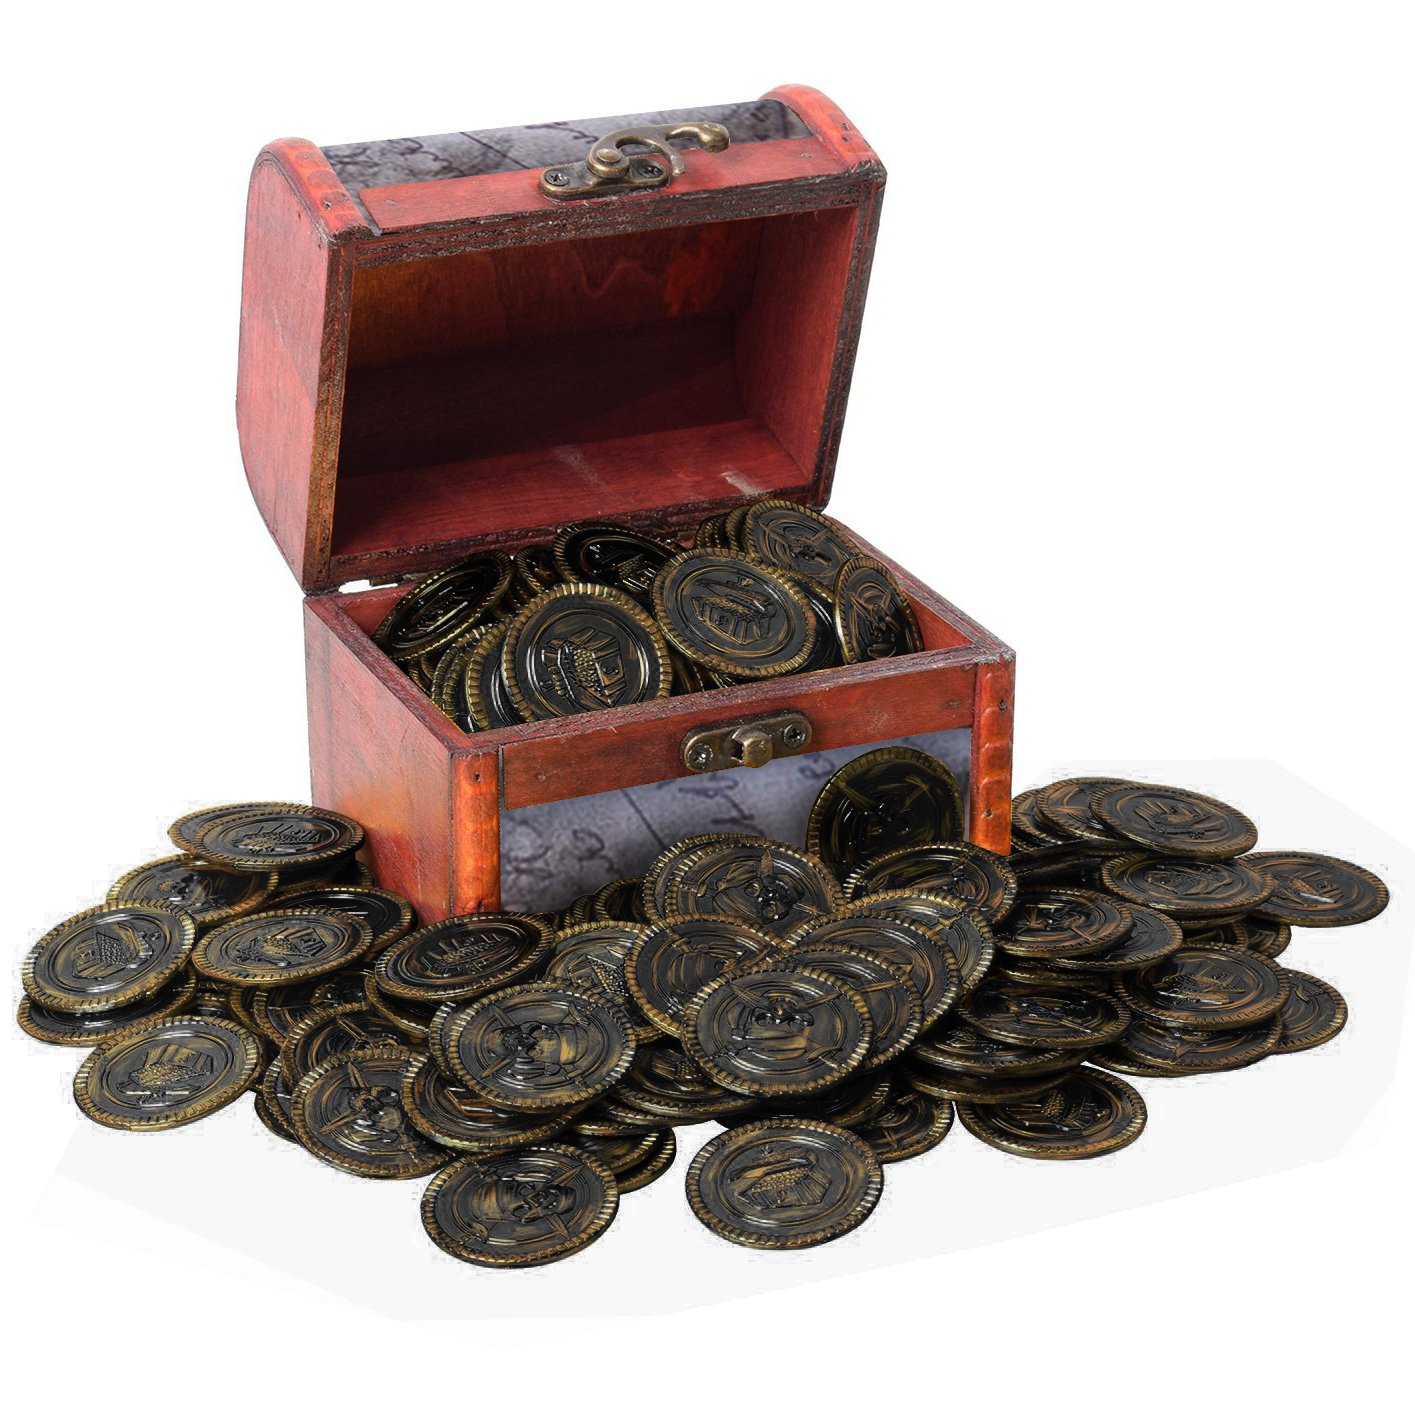 PartyYeah 100 Pcs Pirate Vintage Plastic Fake Gold Coins & Pirate Vintage Treasure Box Chest for Kids Hunt Play Party Favors (Bronze, Coins+Box)